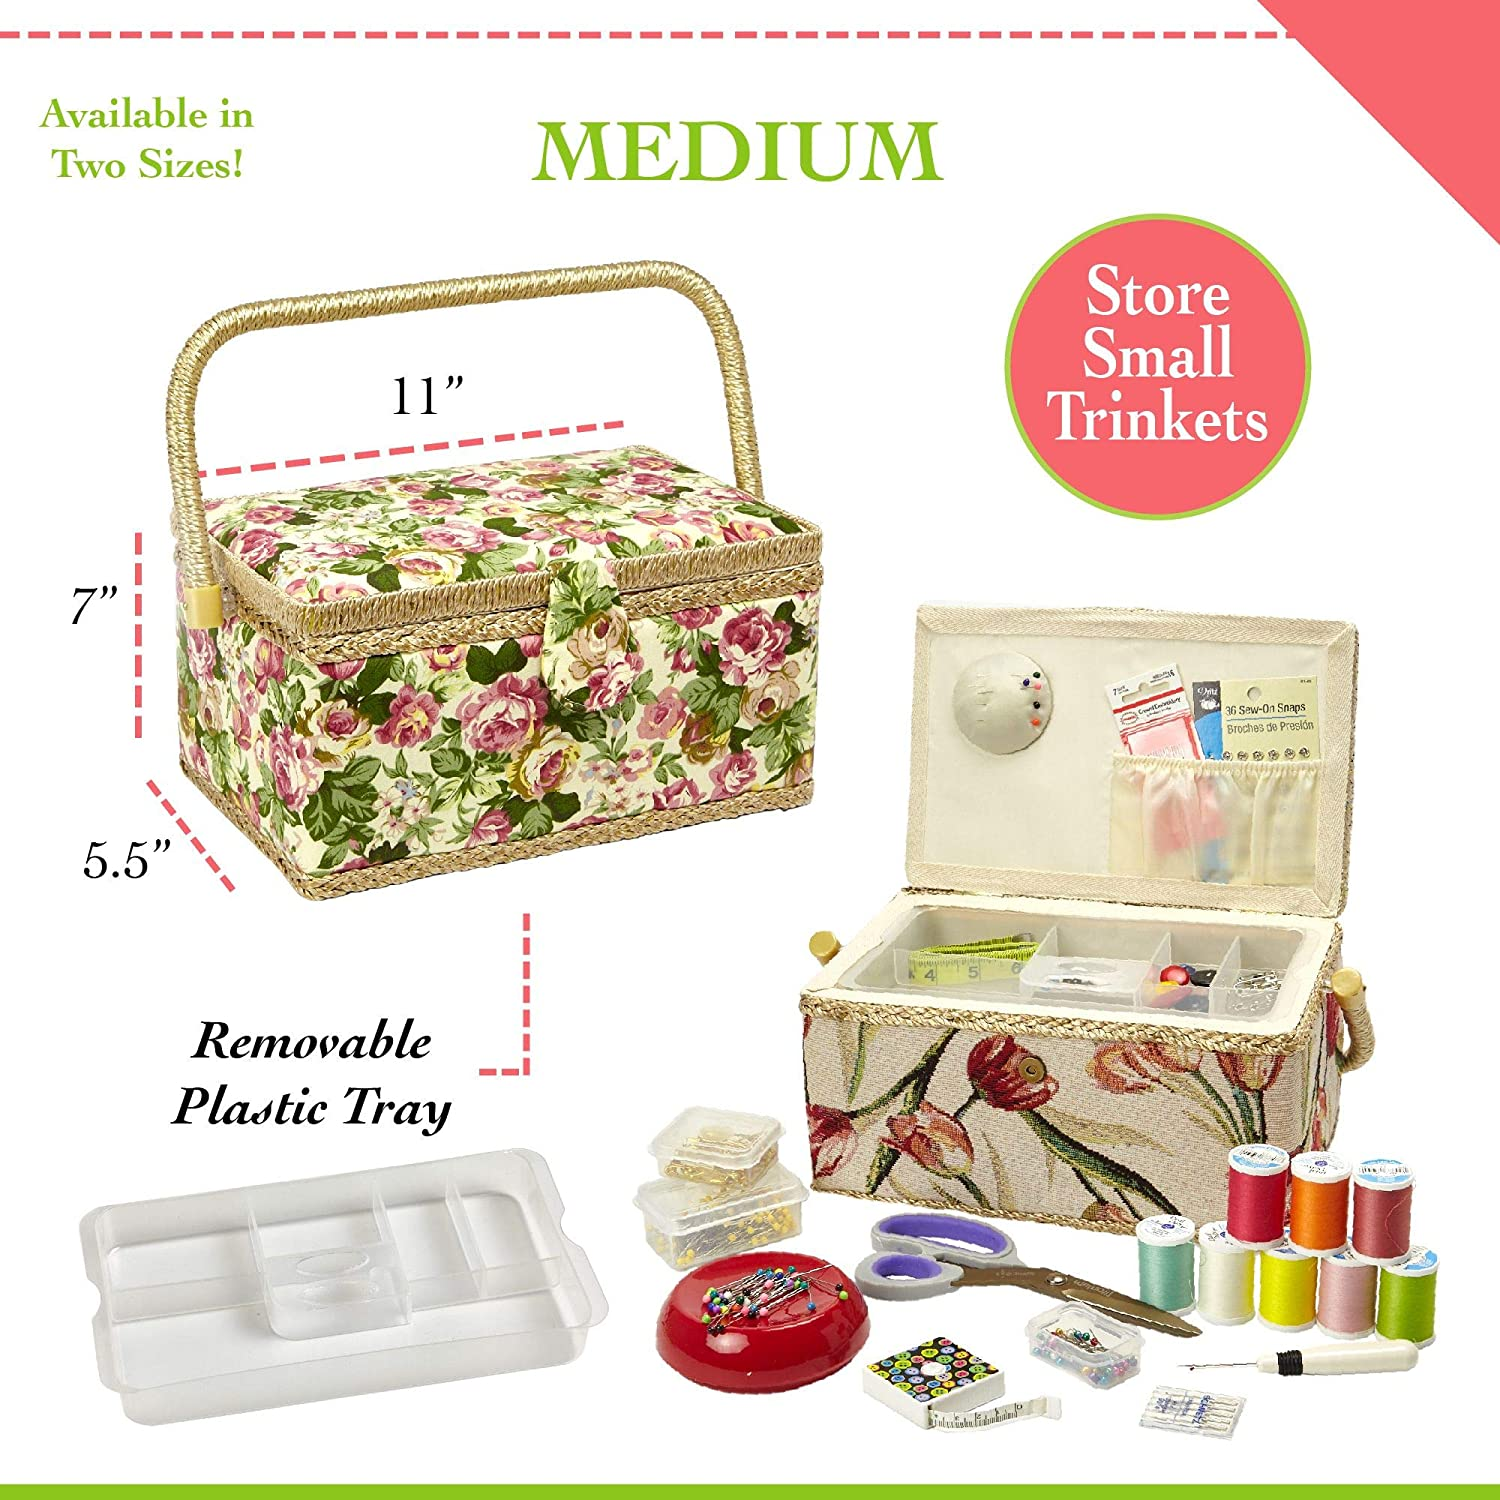 Medium by Adolfo Design Built-in Pin Cushion and Interior Pocket 11 x 7 x 5.5 Sewing Basket with Rose Floral Print Design- Sewing Kit Storage Box with Removable Tray